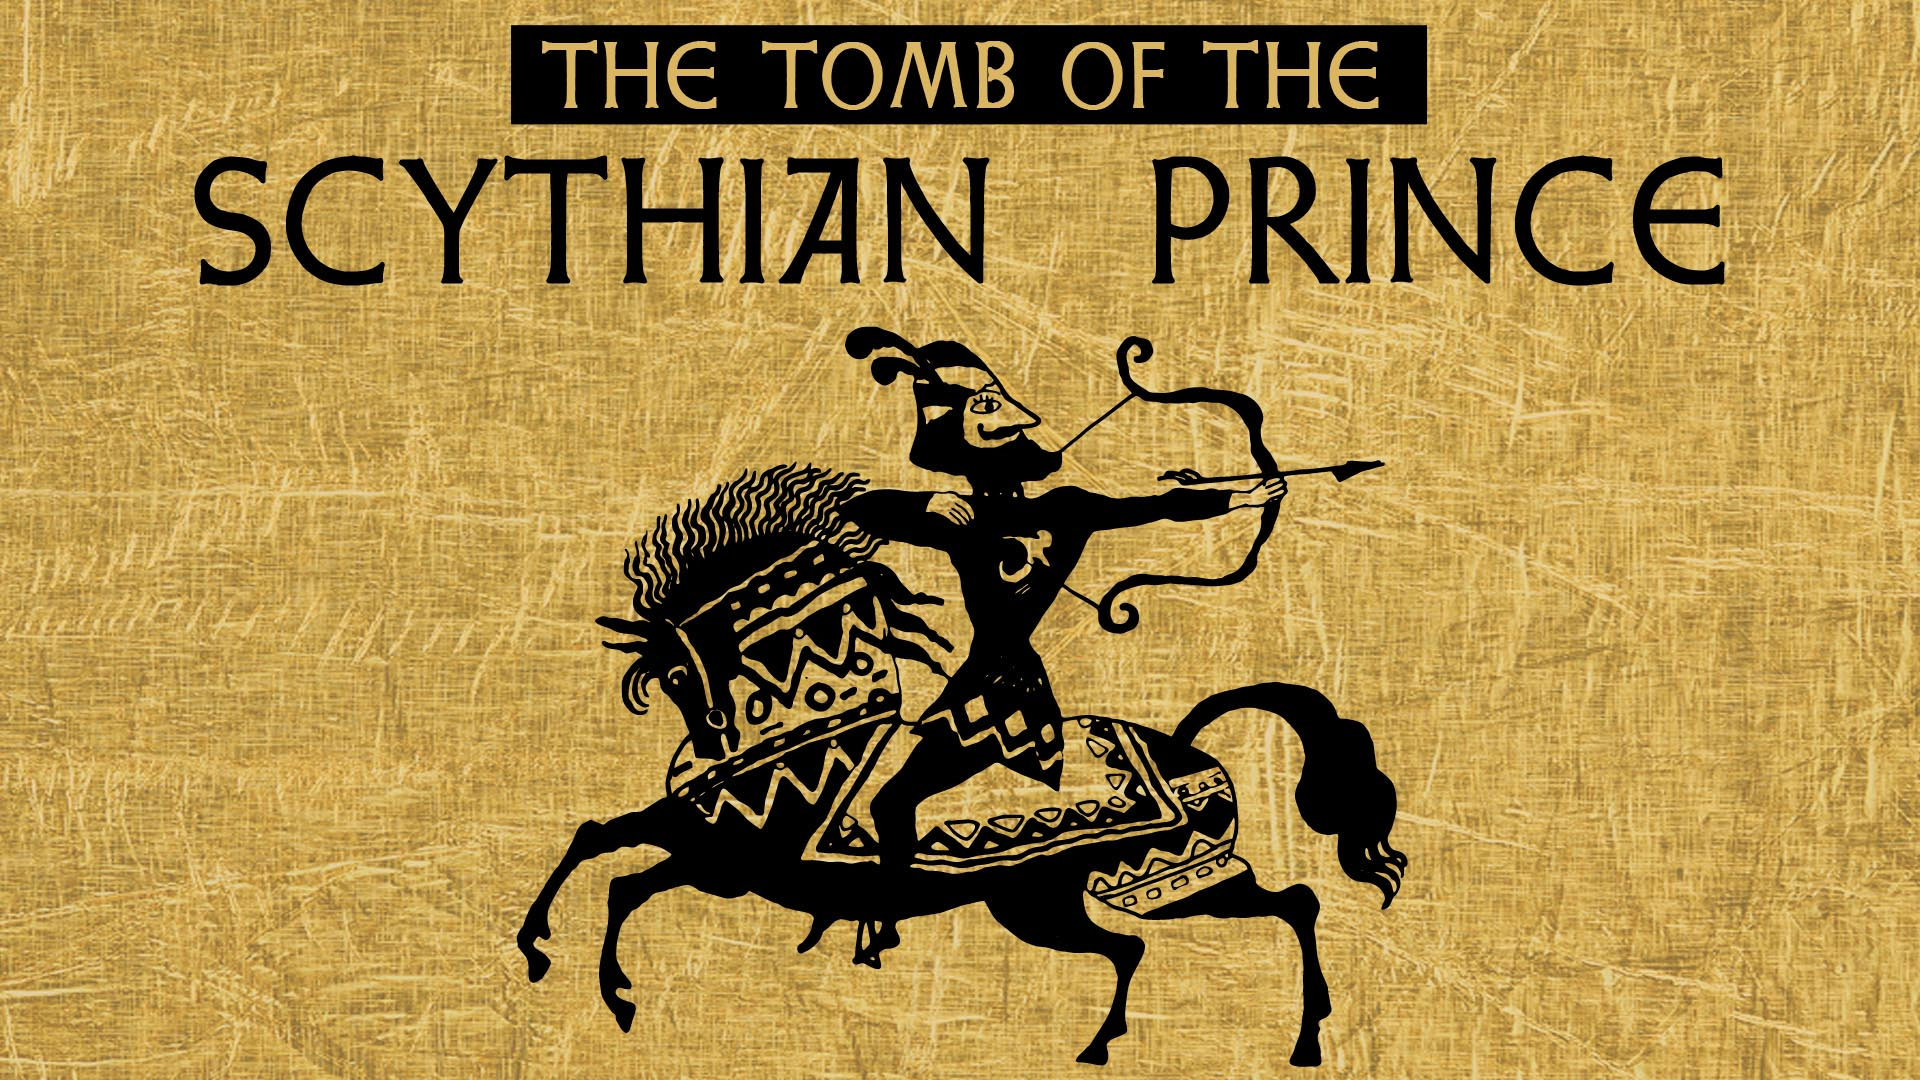 The Tomb of the Scythian Prince -